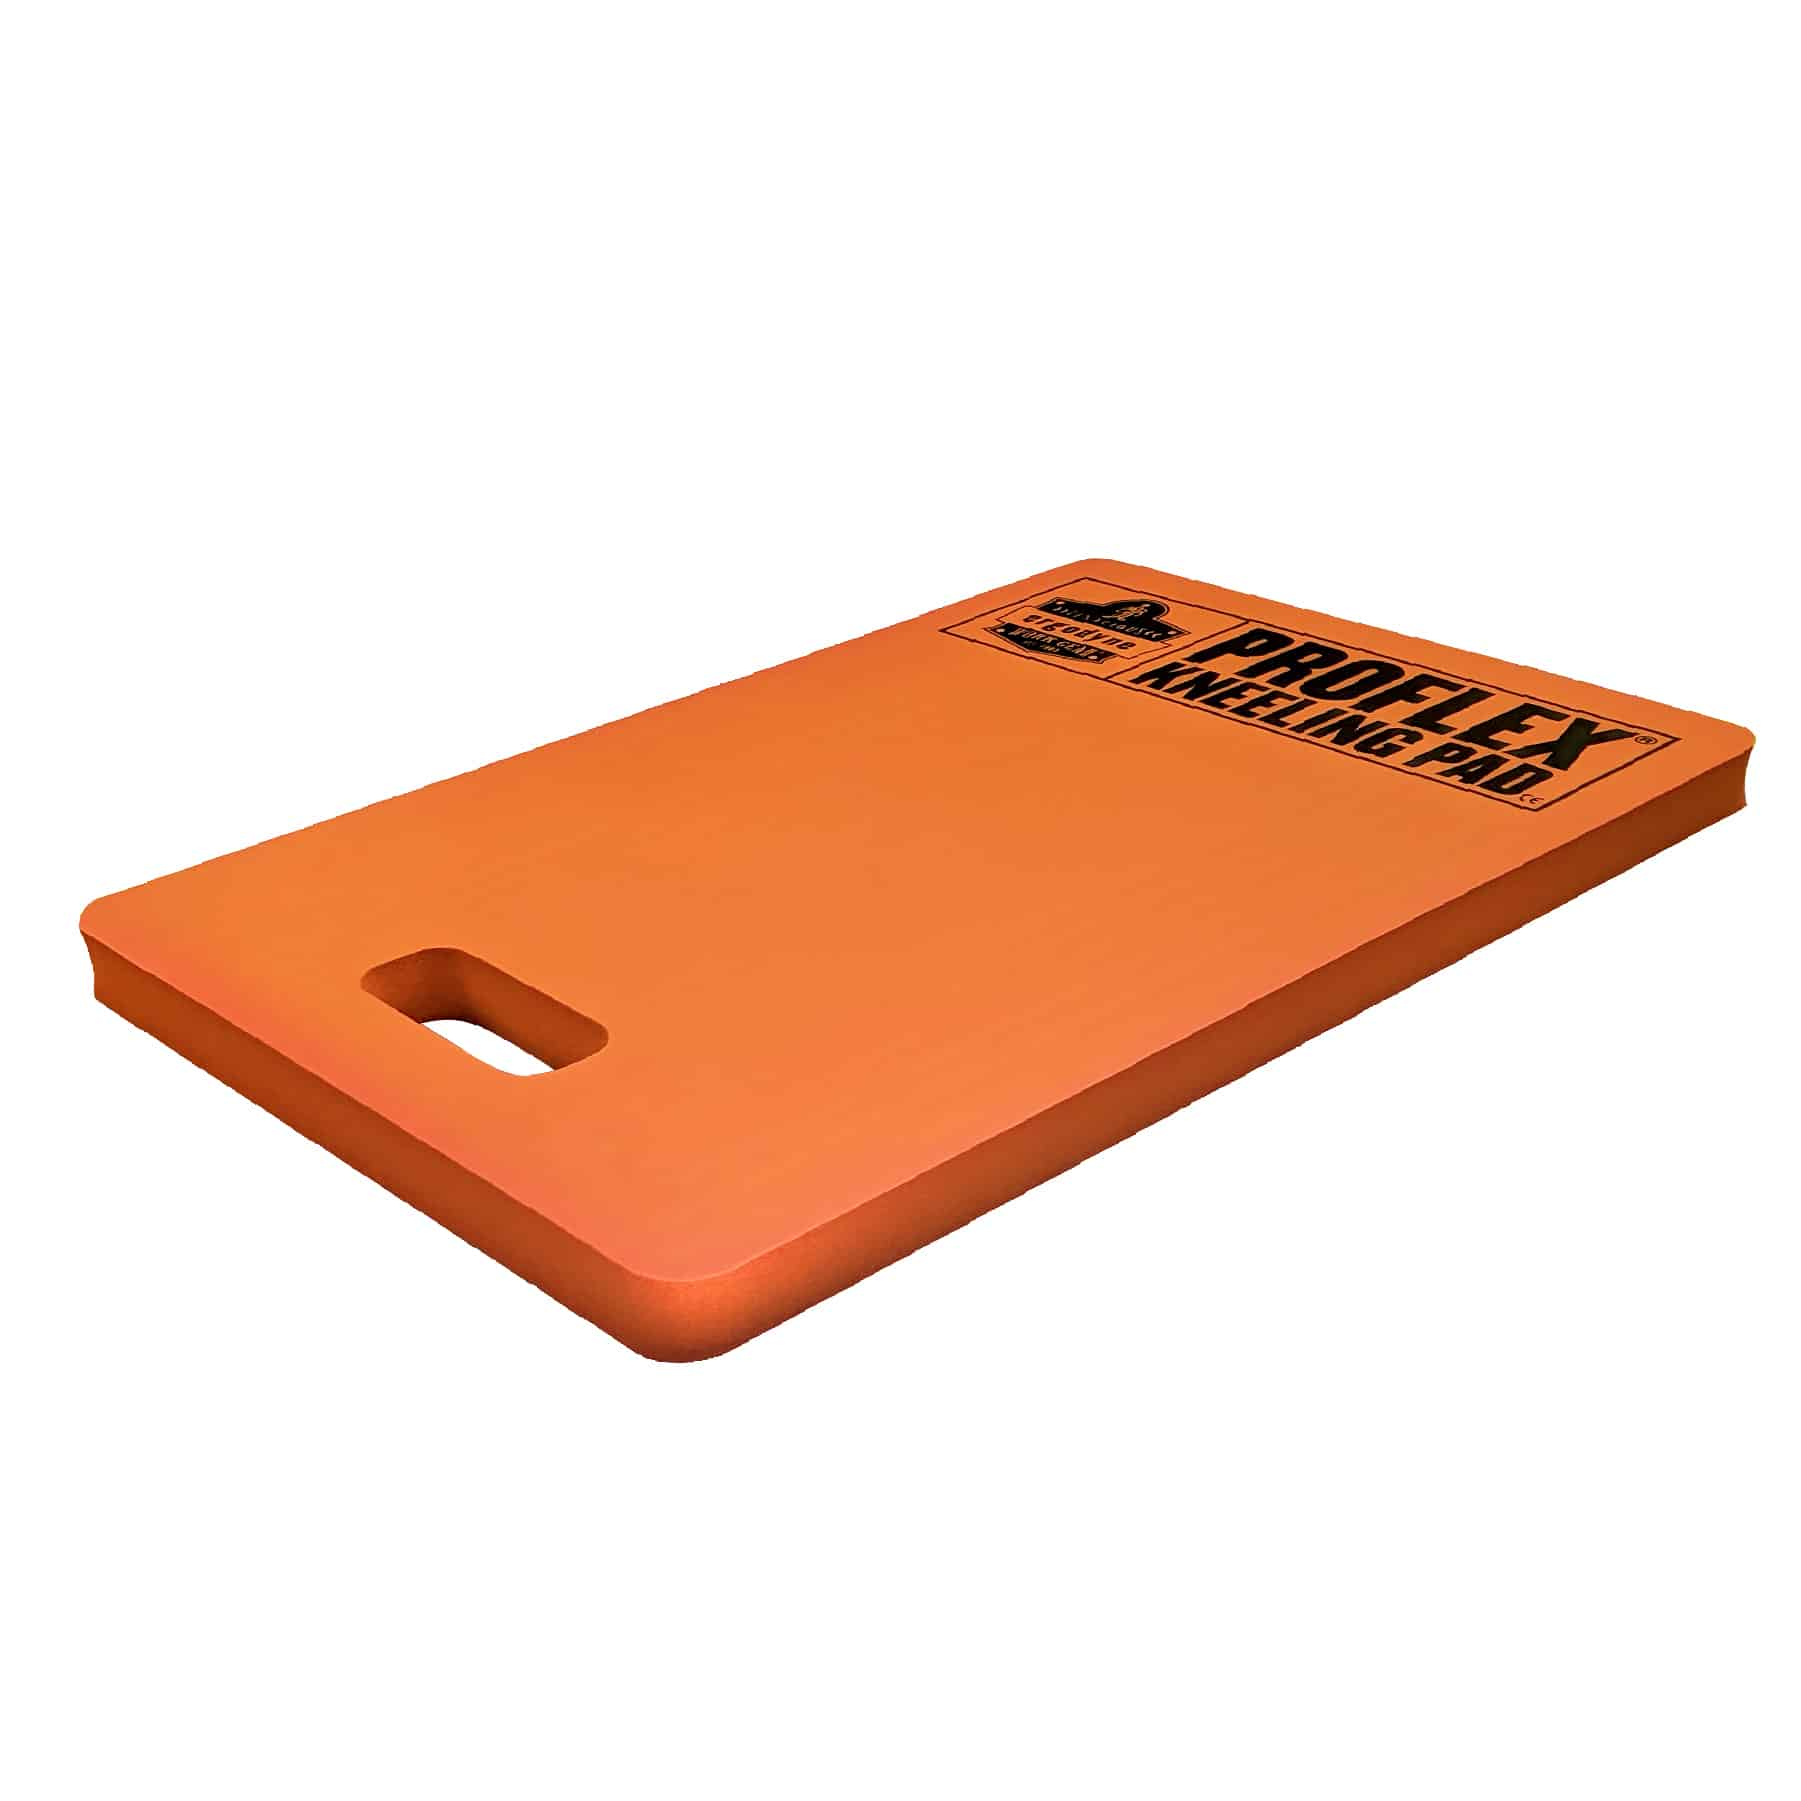 ERGODYNE 380 Kniekissen orange